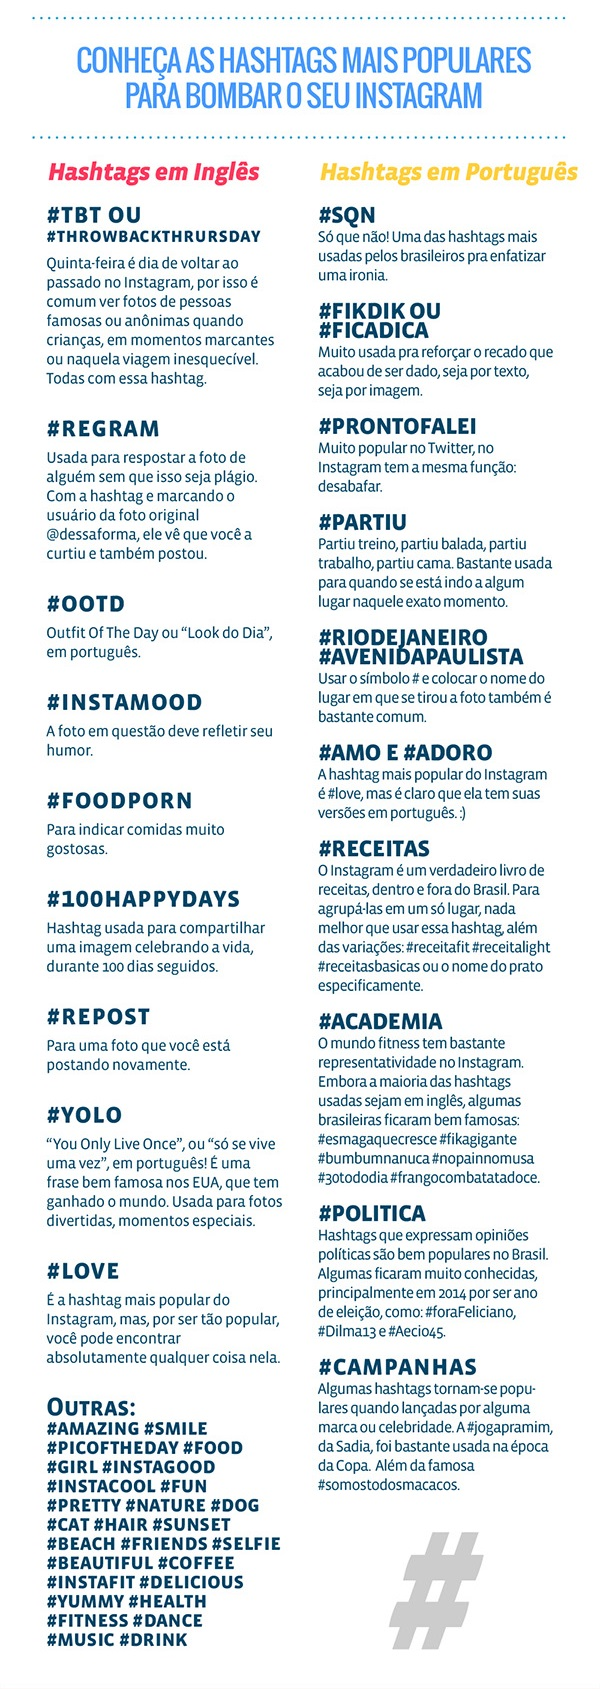 como bombar com as hashtags